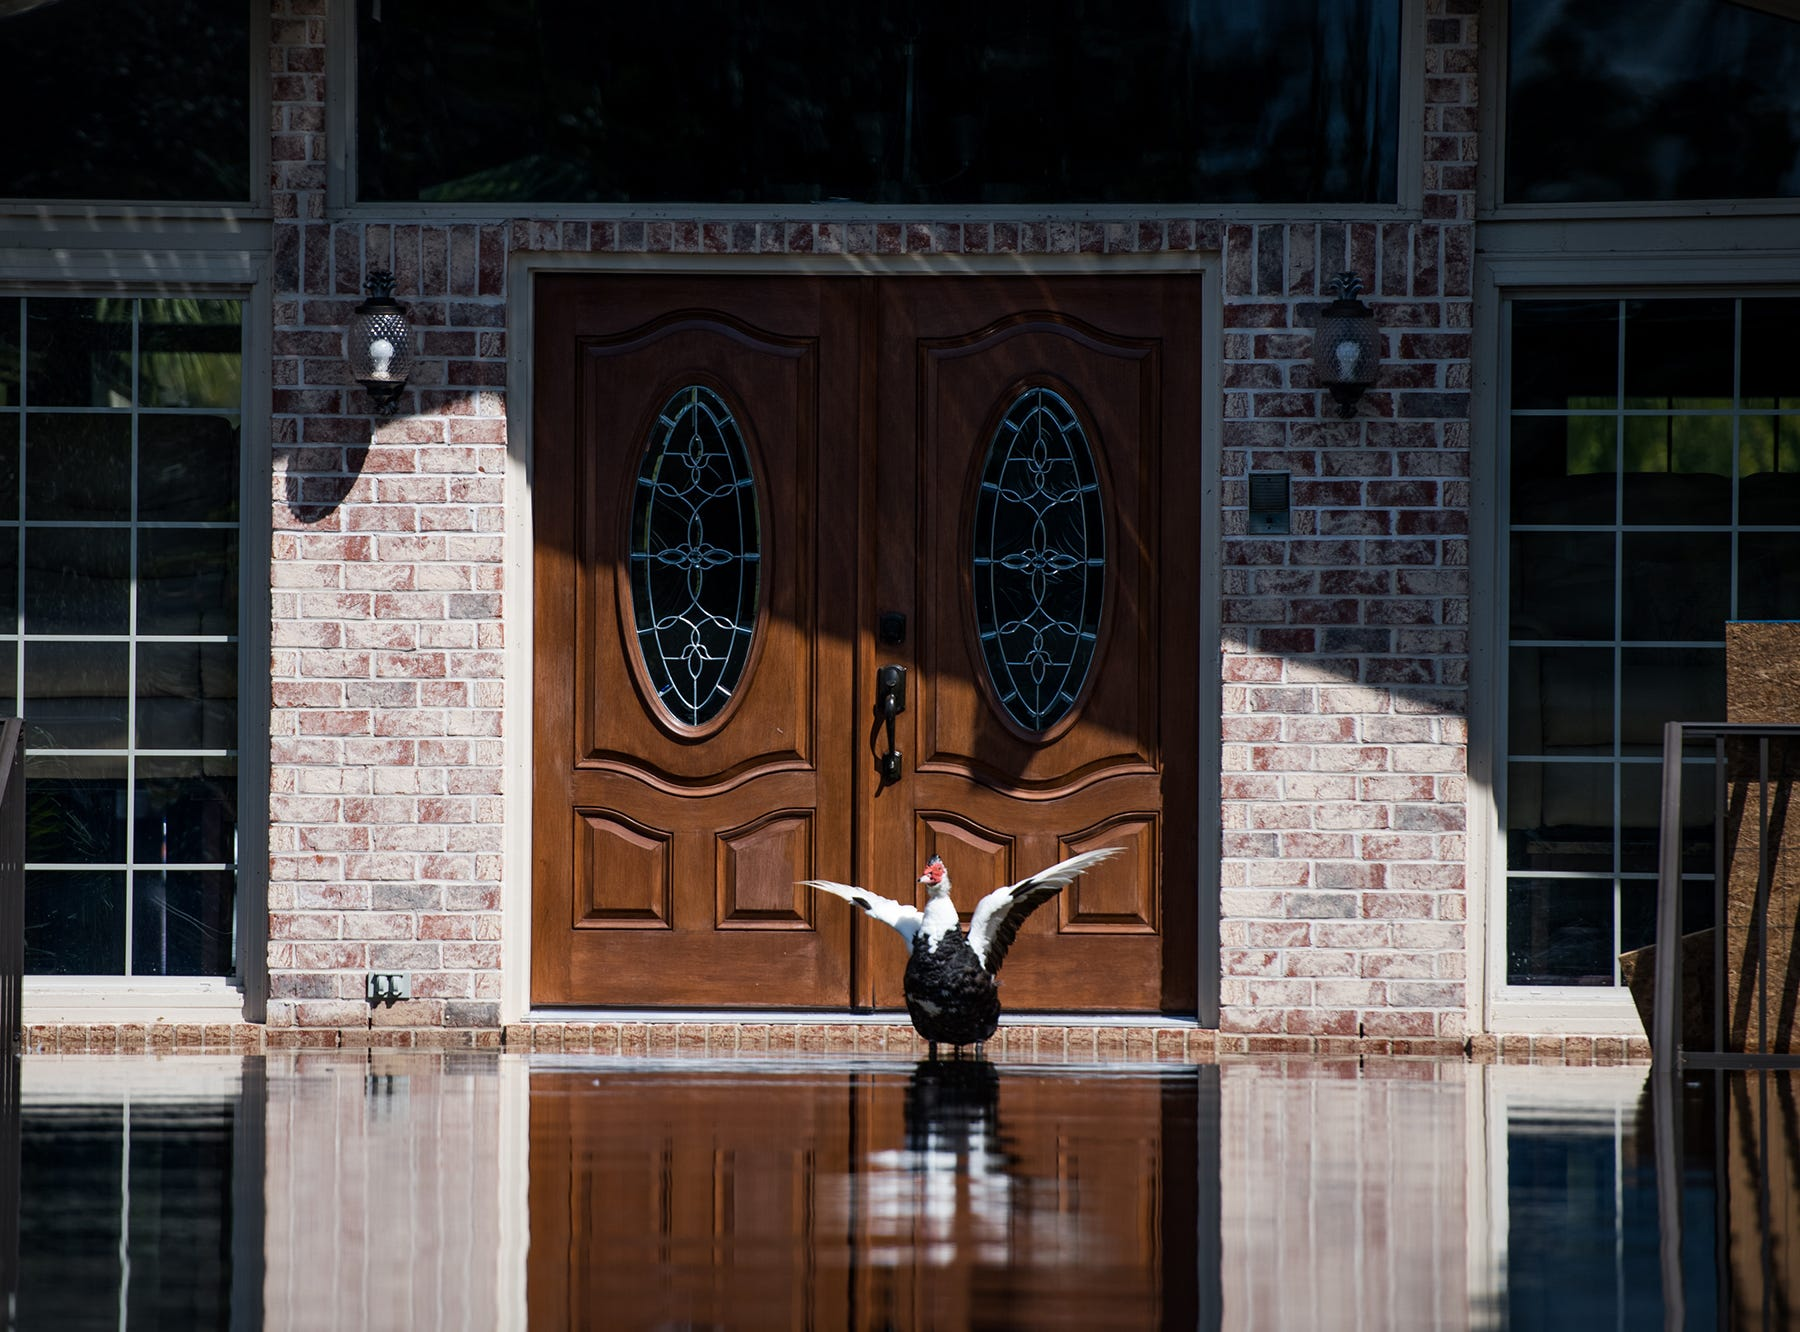 A duck flaps its wings in front of a home inundated with floodwaters caused by Hurricane Florence near the Waccamaw River on Sept. 23, 2018 in Conway, S.C.